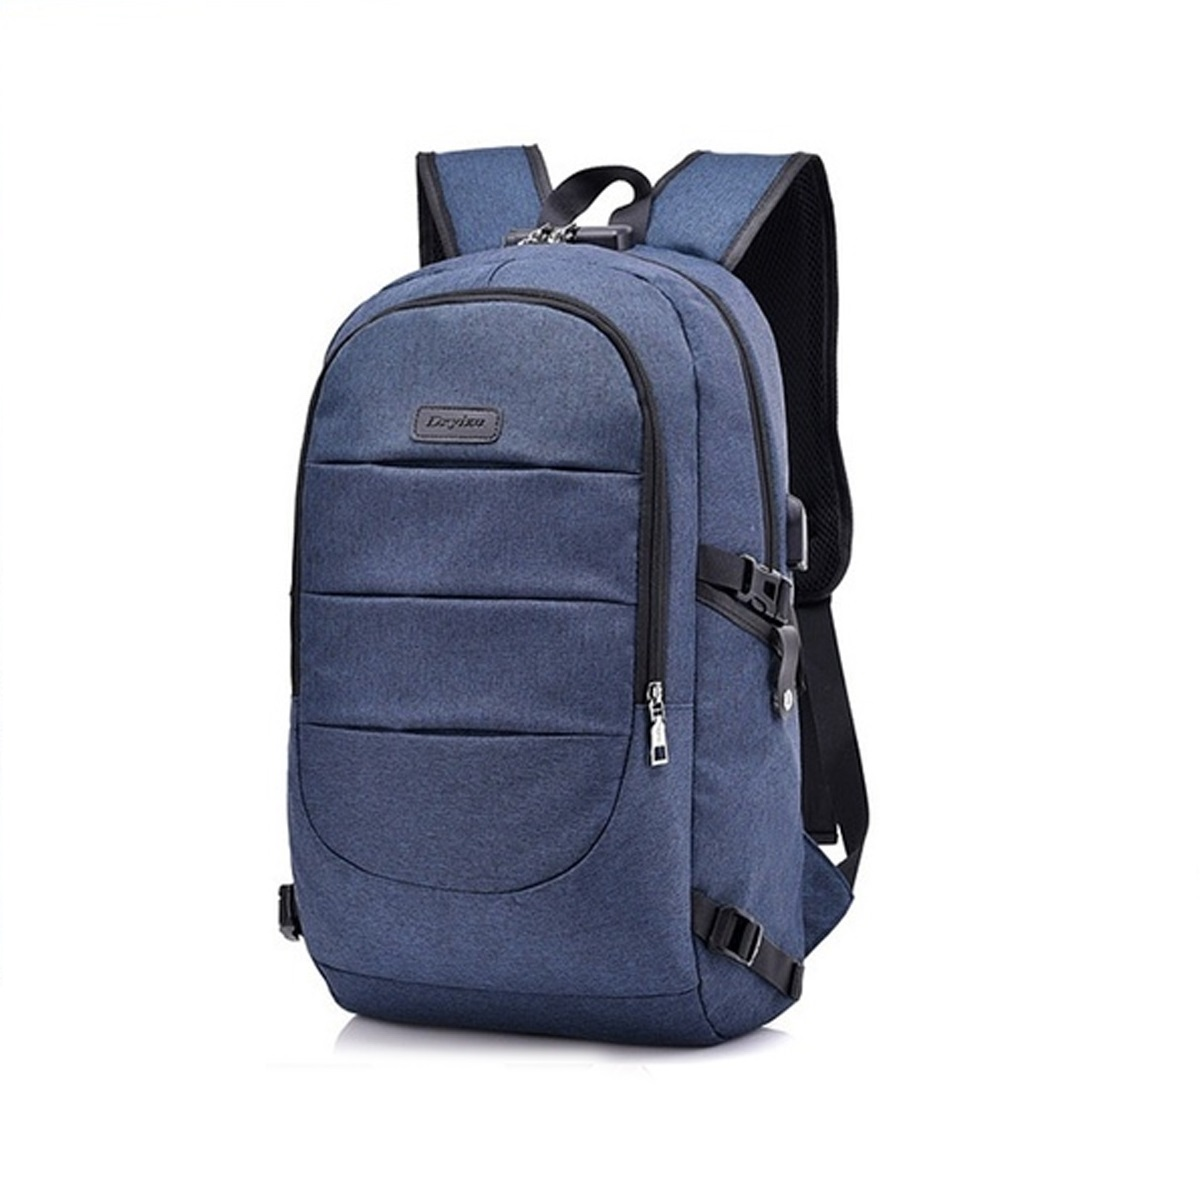 Anti-Theft Laptop Backpack with Charge USB Port Travel Large Capacity Waterproof Bag